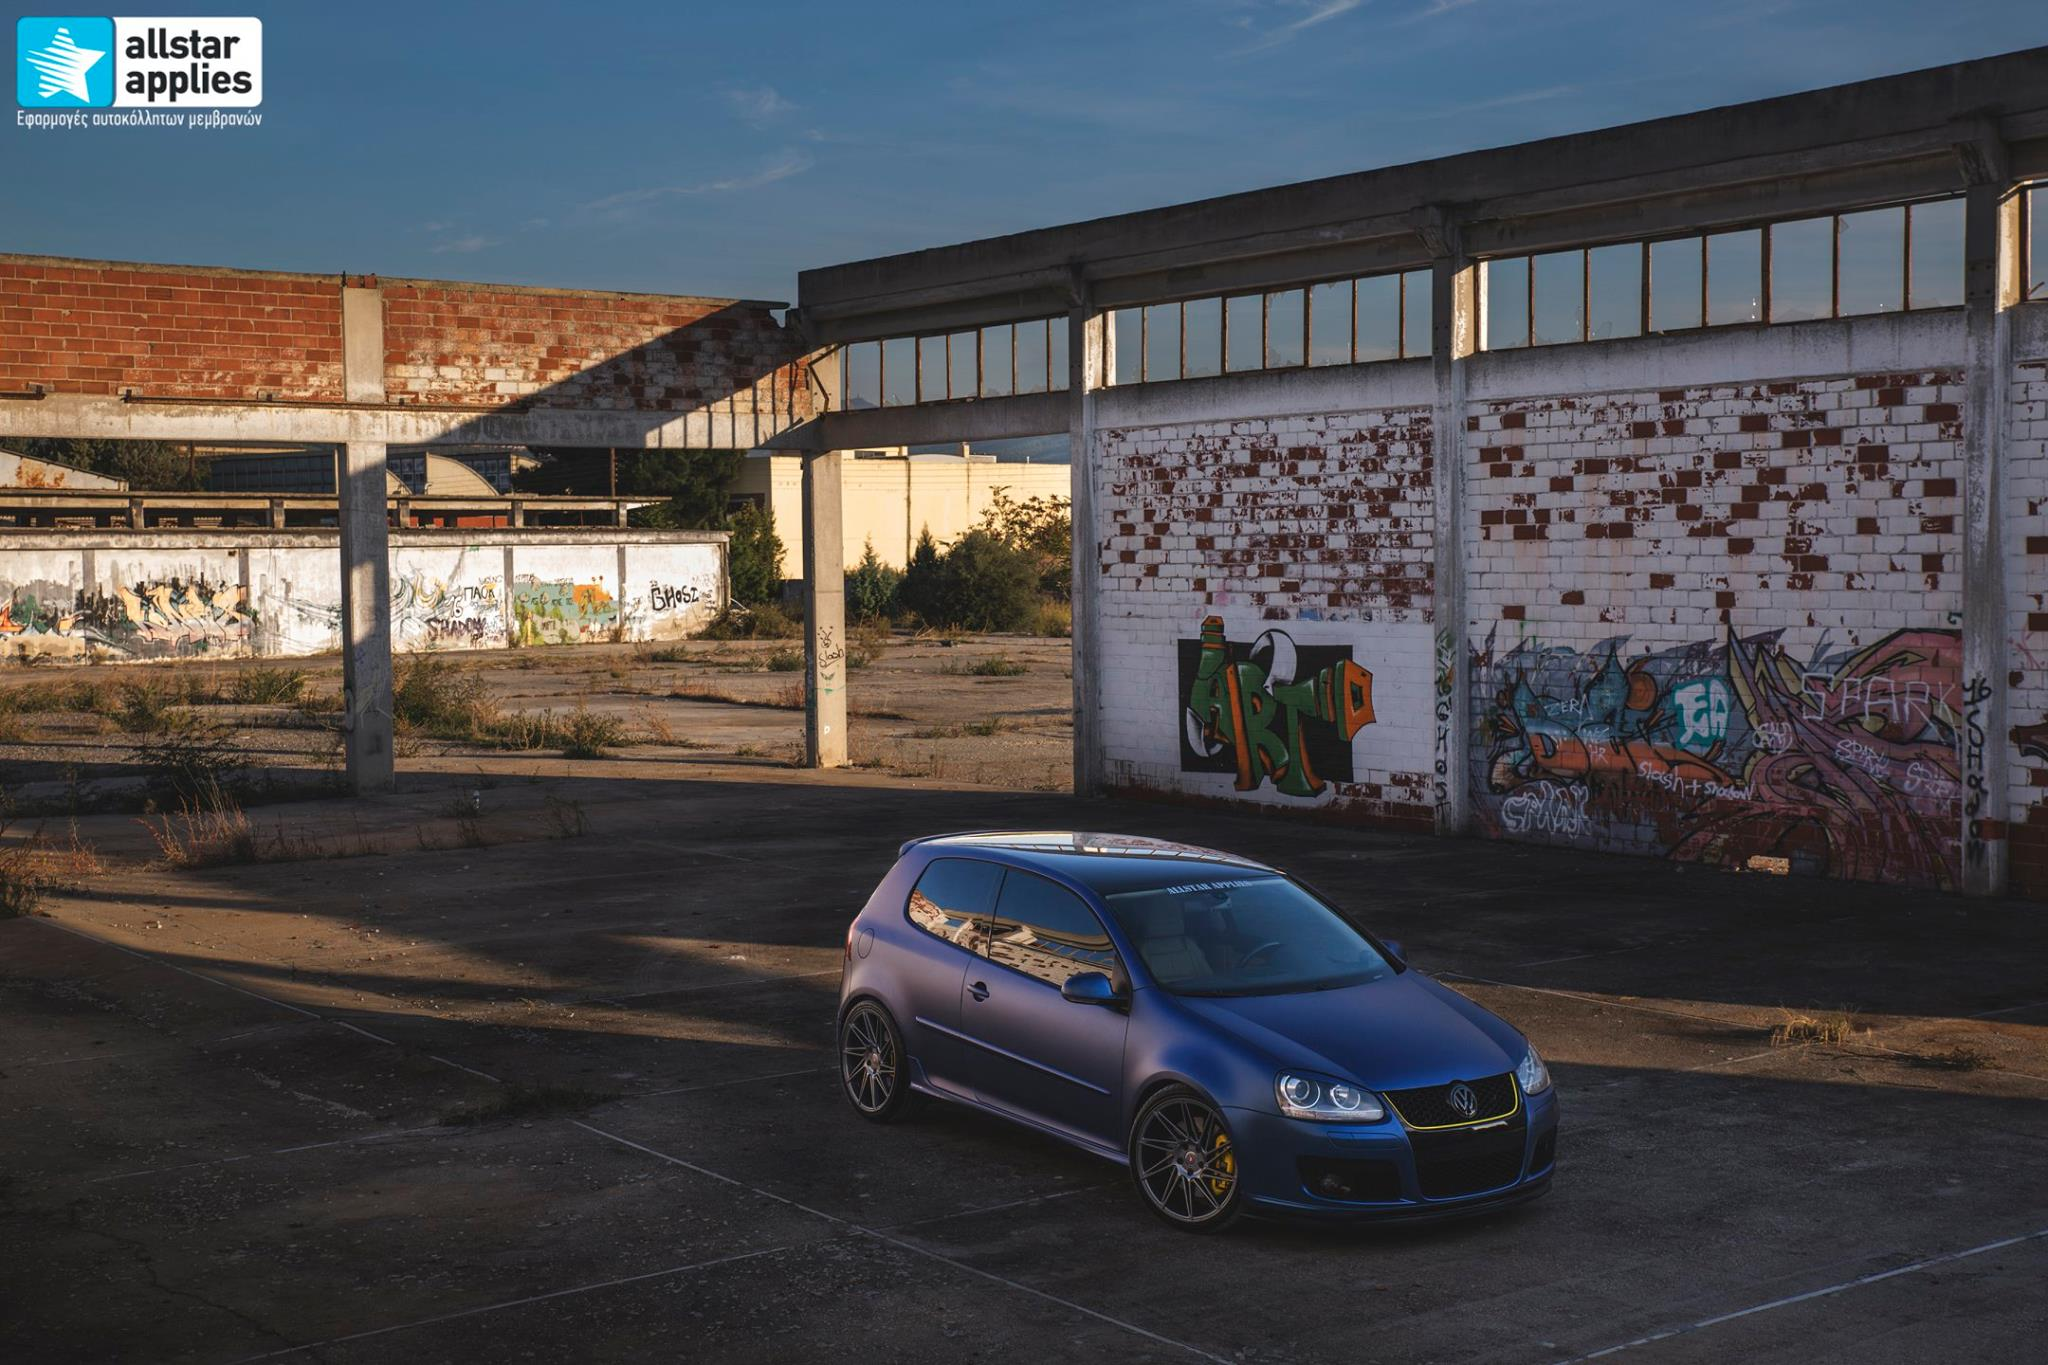 VW Golf 5 - Matt Trenton Blue (5)